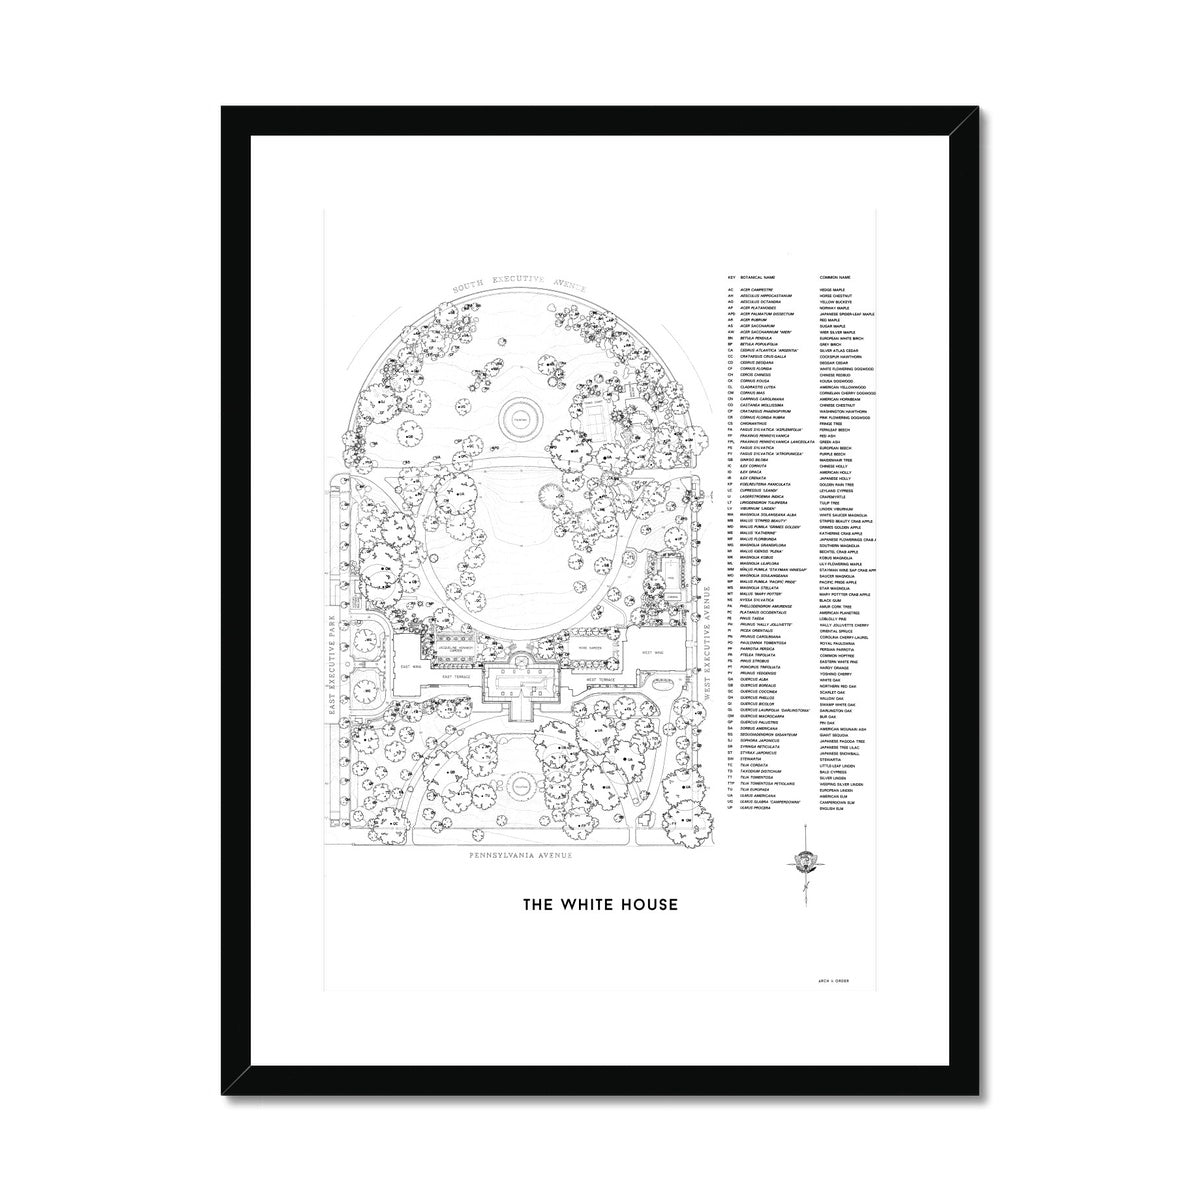 The White House Landscaping Plan - White -  Framed & Mounted Print